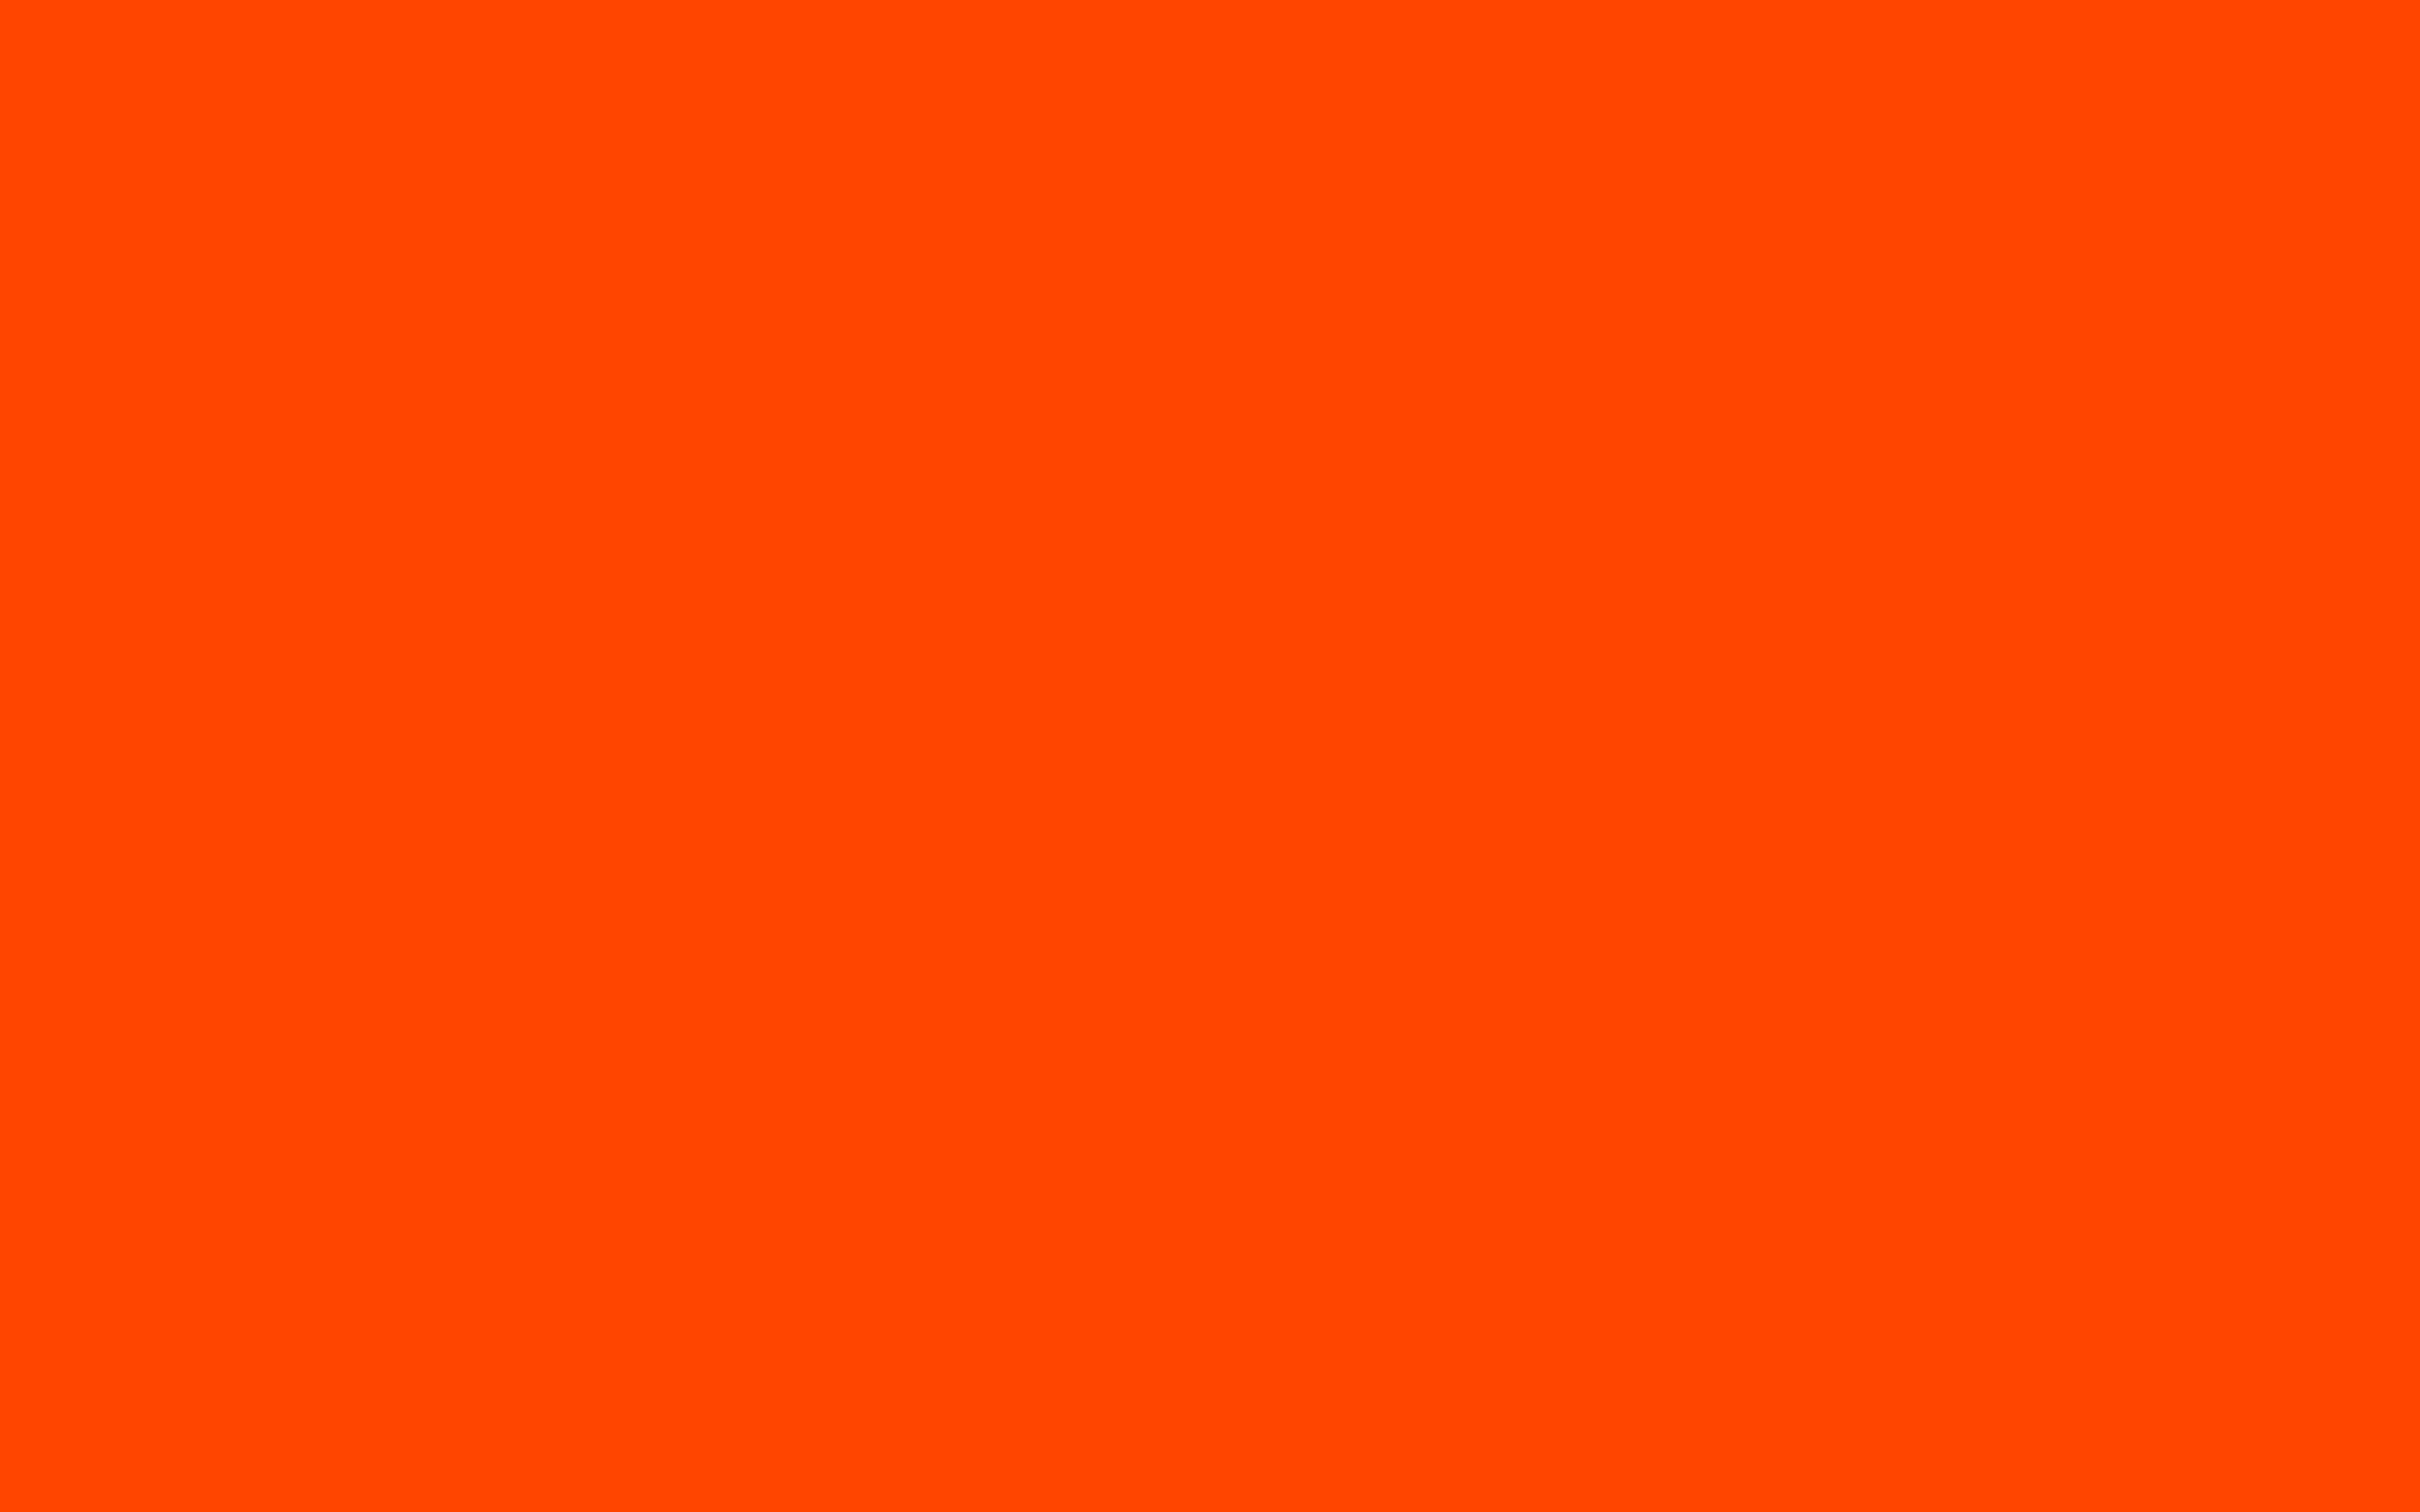 2560x1600 Orange-red Solid Color Background